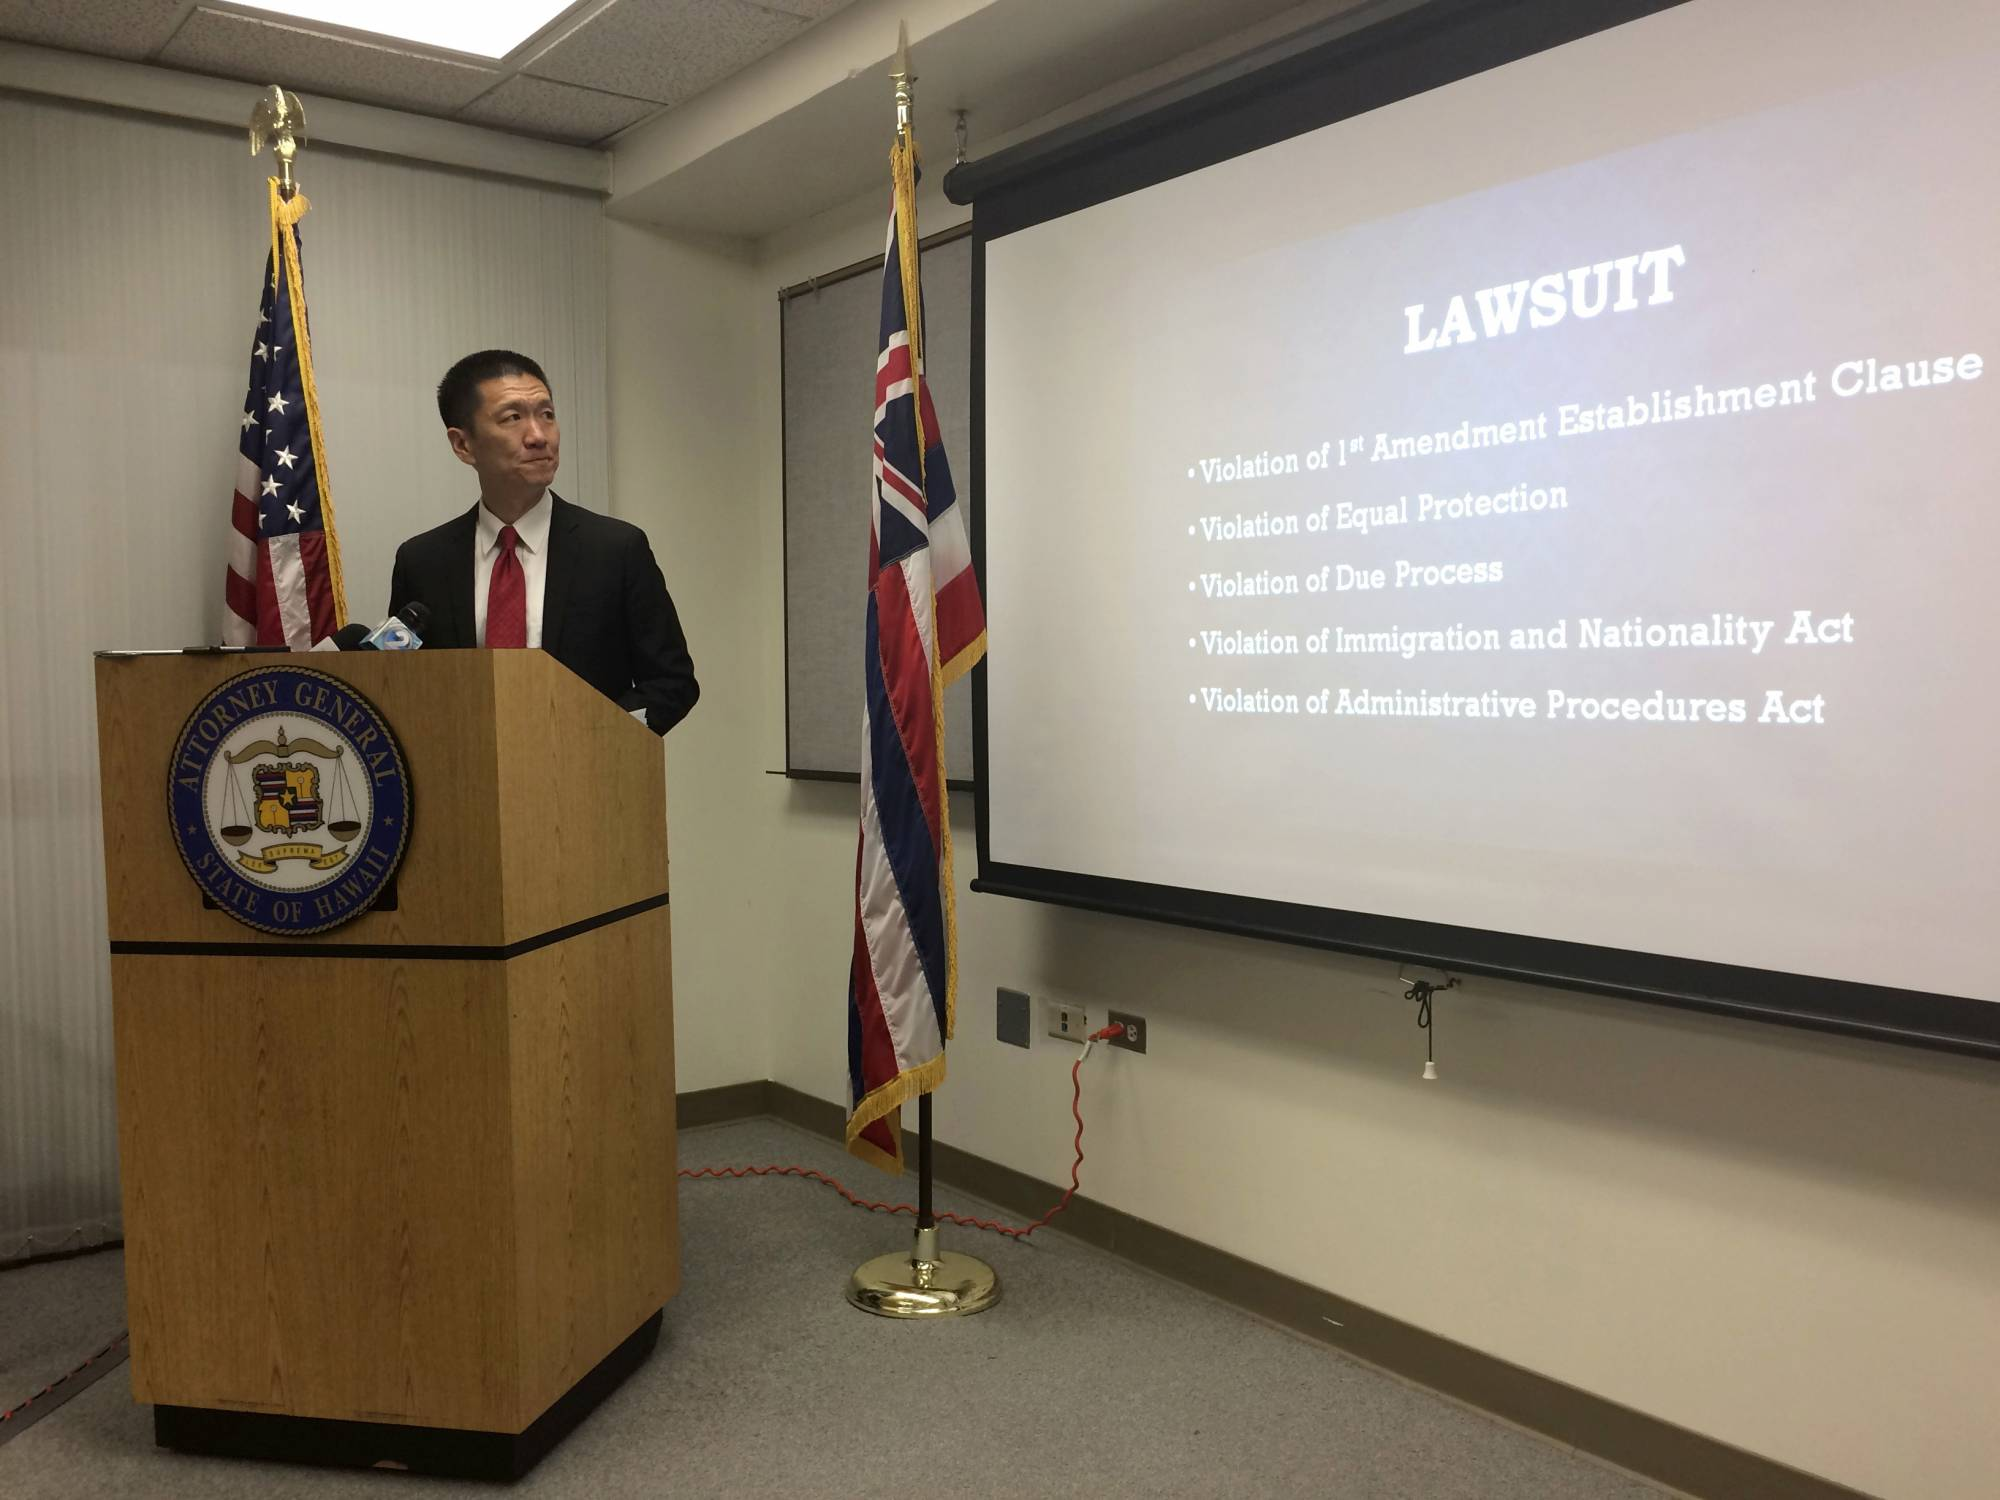 Hawaii AG: An appeal of travel ban ruling likely